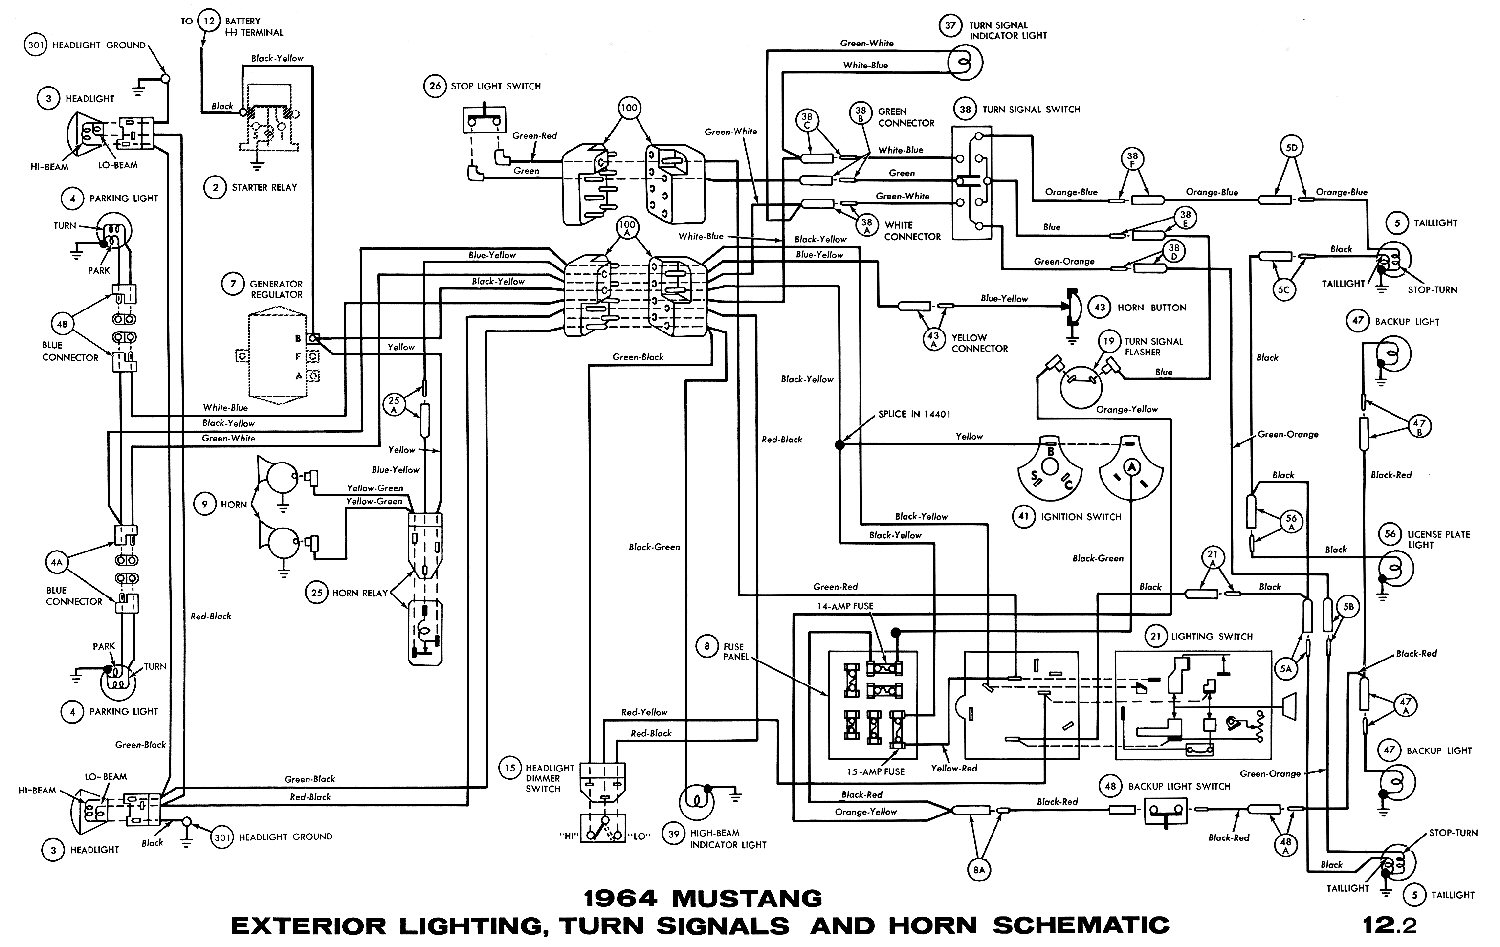 1964 Mustang Wiring Diagrams on emergency generator light